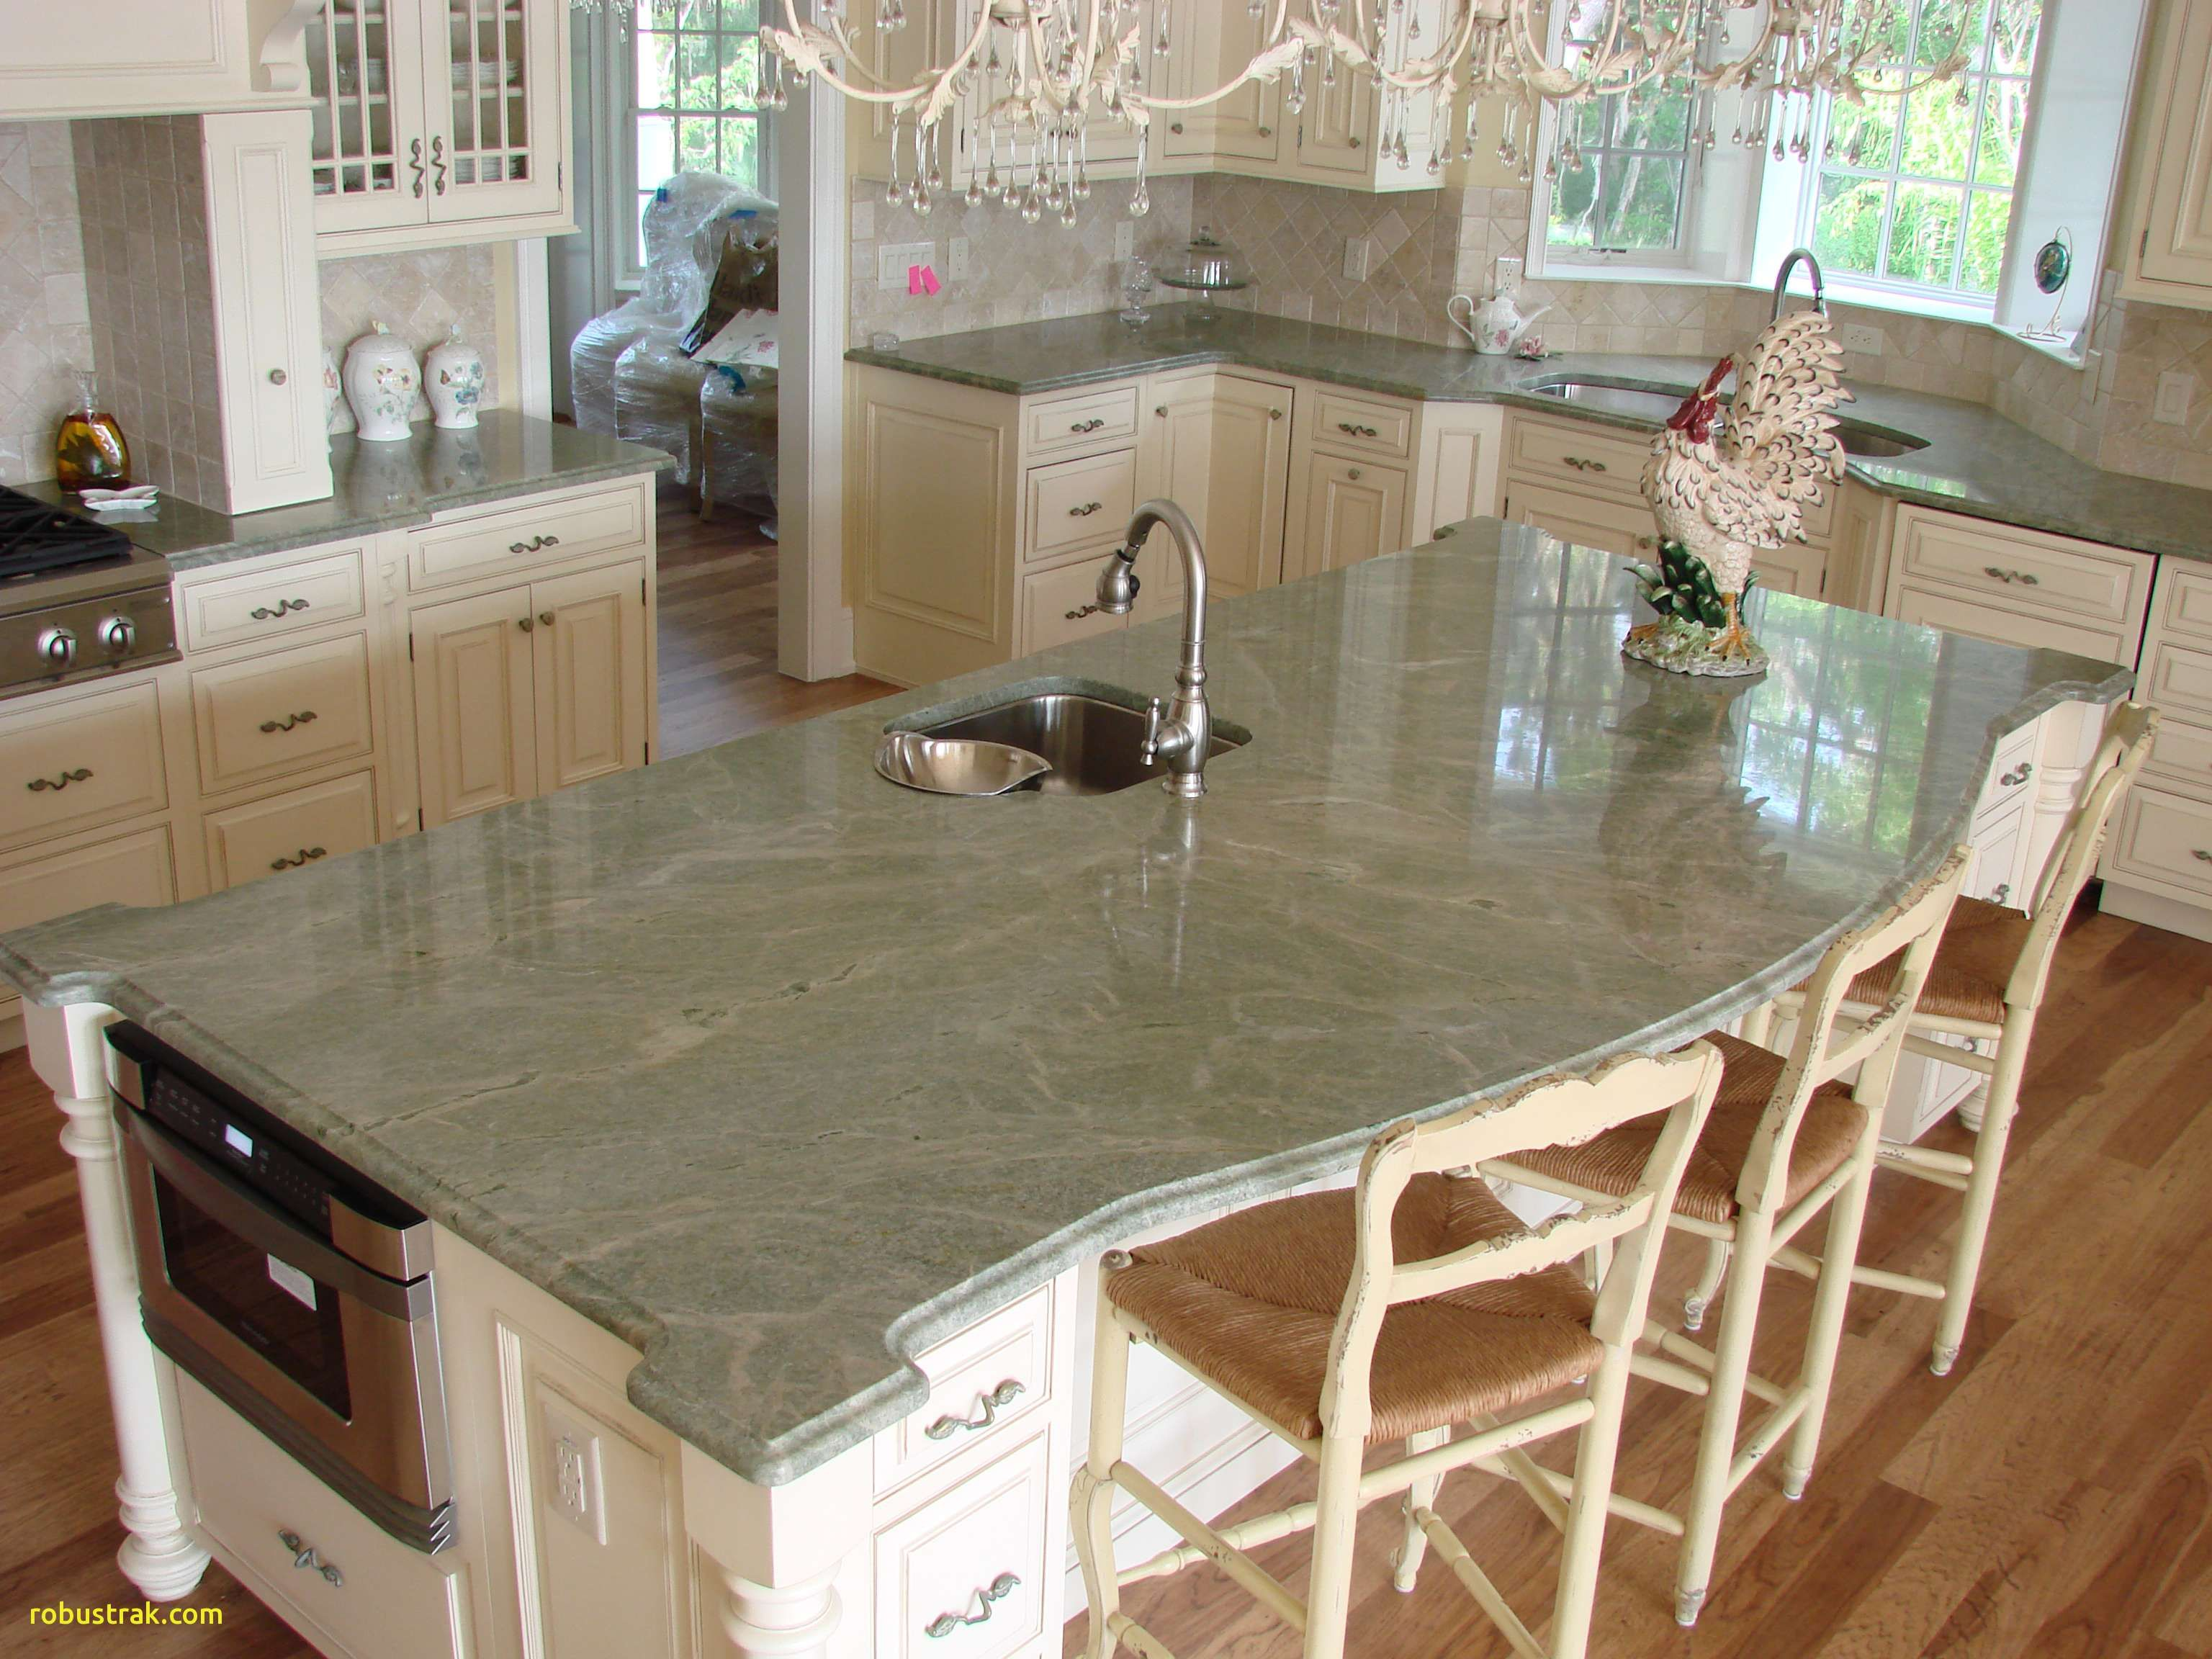 8 Popular Countertop Materials The Pros And The Cons Granite Countertops Kitchen Marble Kitchen Island Green Granite Countertops